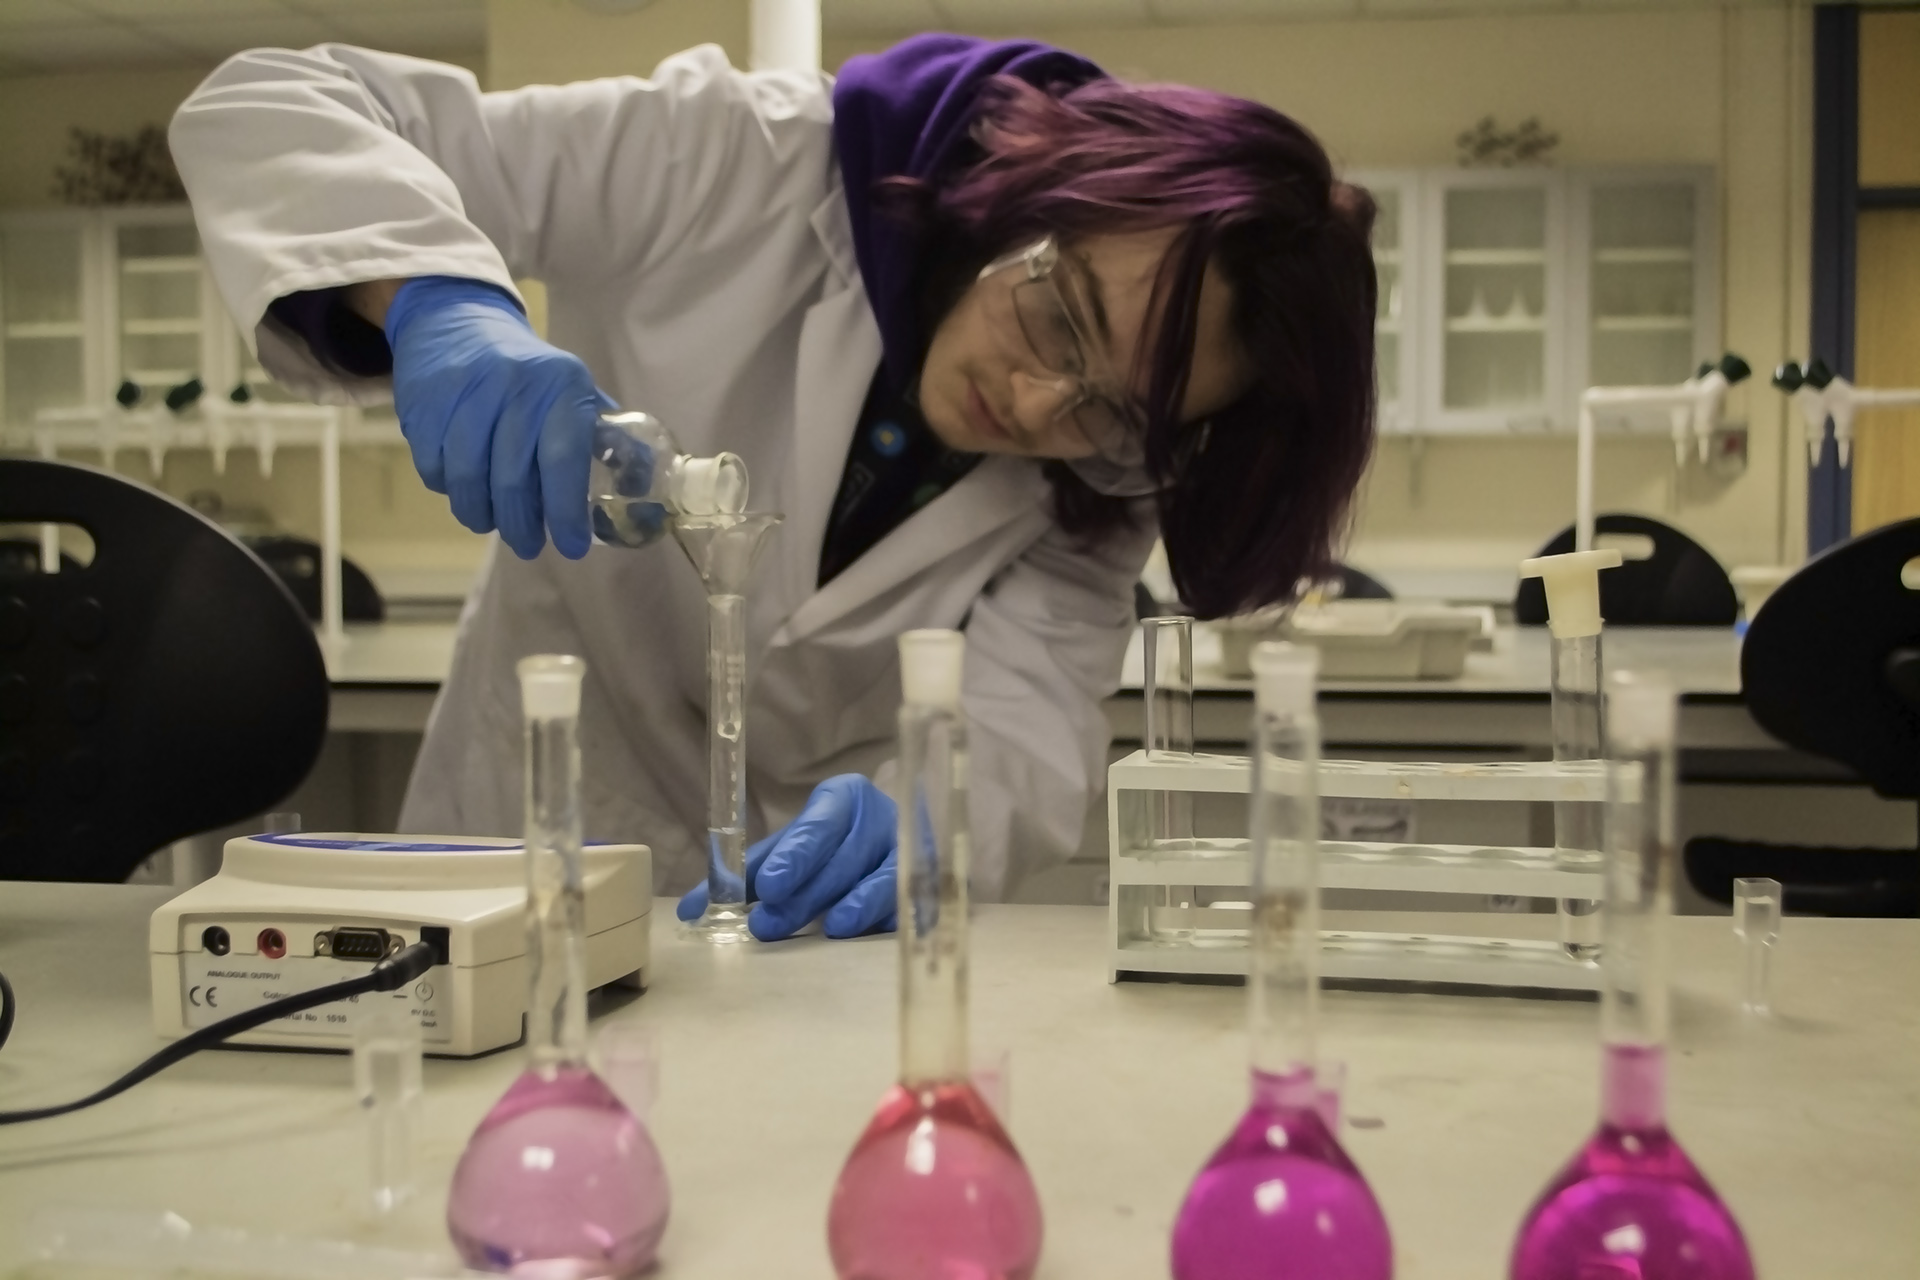 Science. Student in laboratory pouring liquid into measuring tube